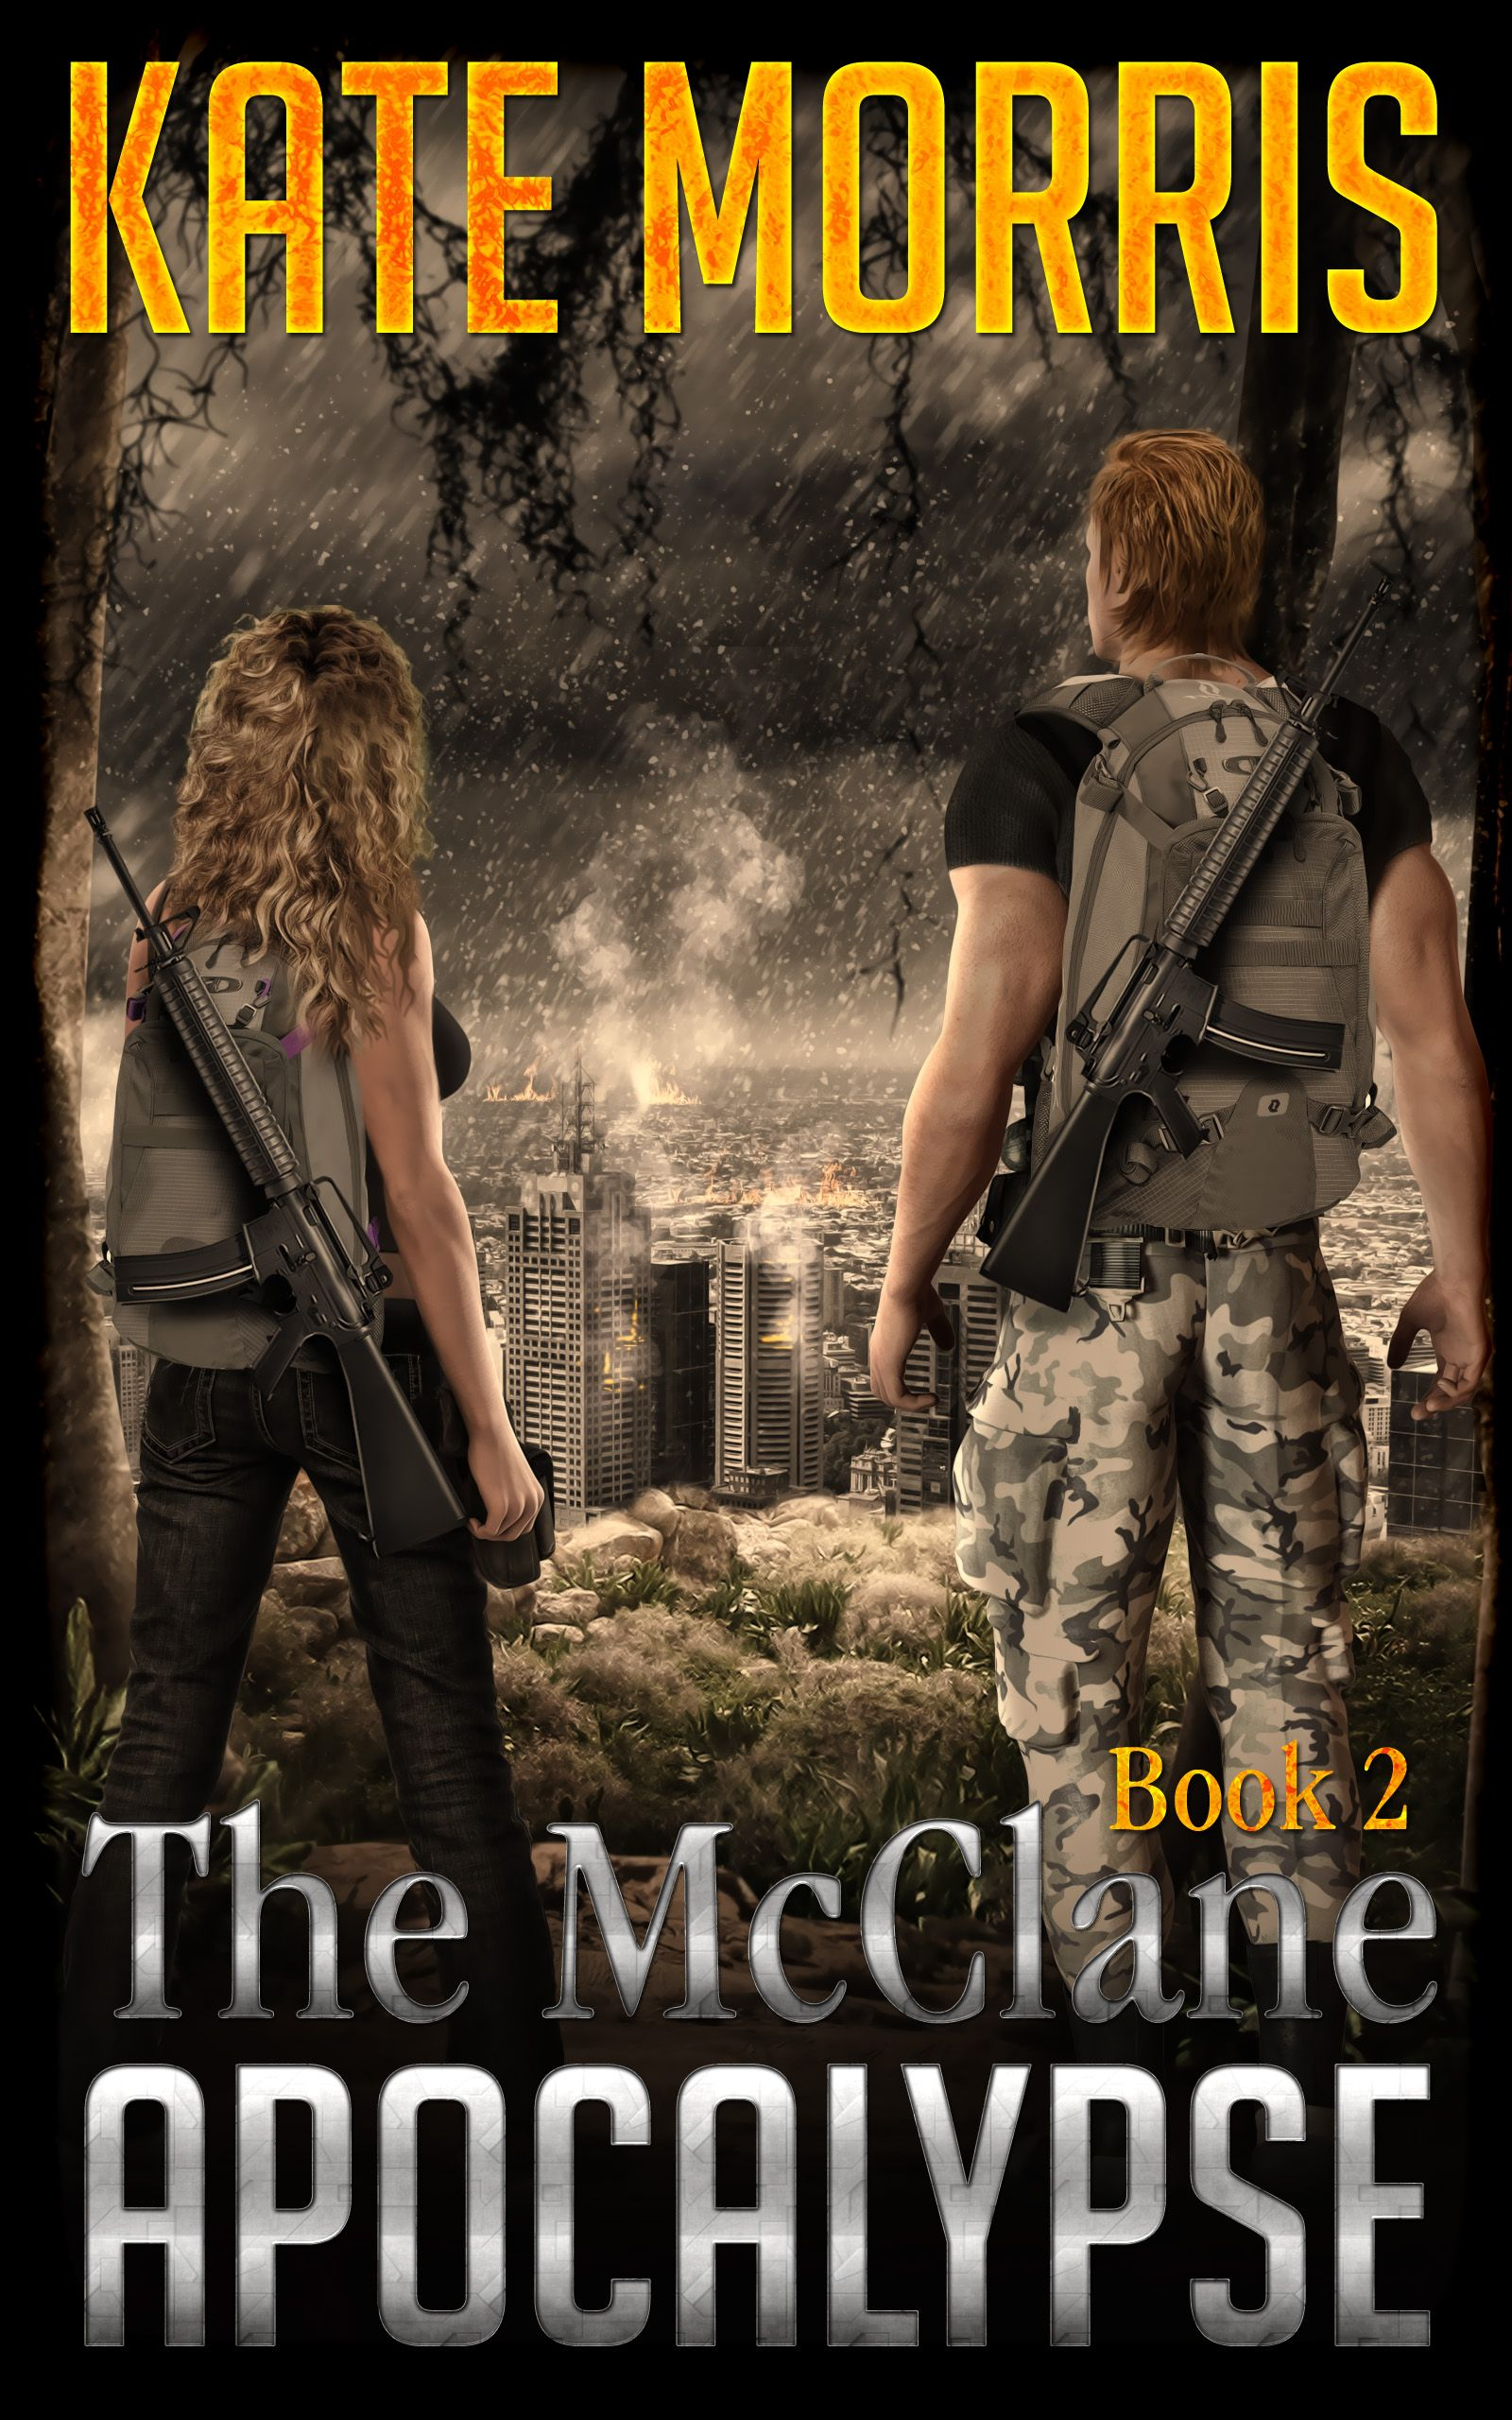 Book 2 out soon. Get book 1 on Amazon this week on sale before part two drops July 4th. Action-adventure-romance. The McClane Apocalypse: Book One by Kate Morris, www.amazon.com/... ON SALE THIS WEEK!! GET IT NOW BEFORE BOOK 2 RELEASES IN 3 WEEKS!